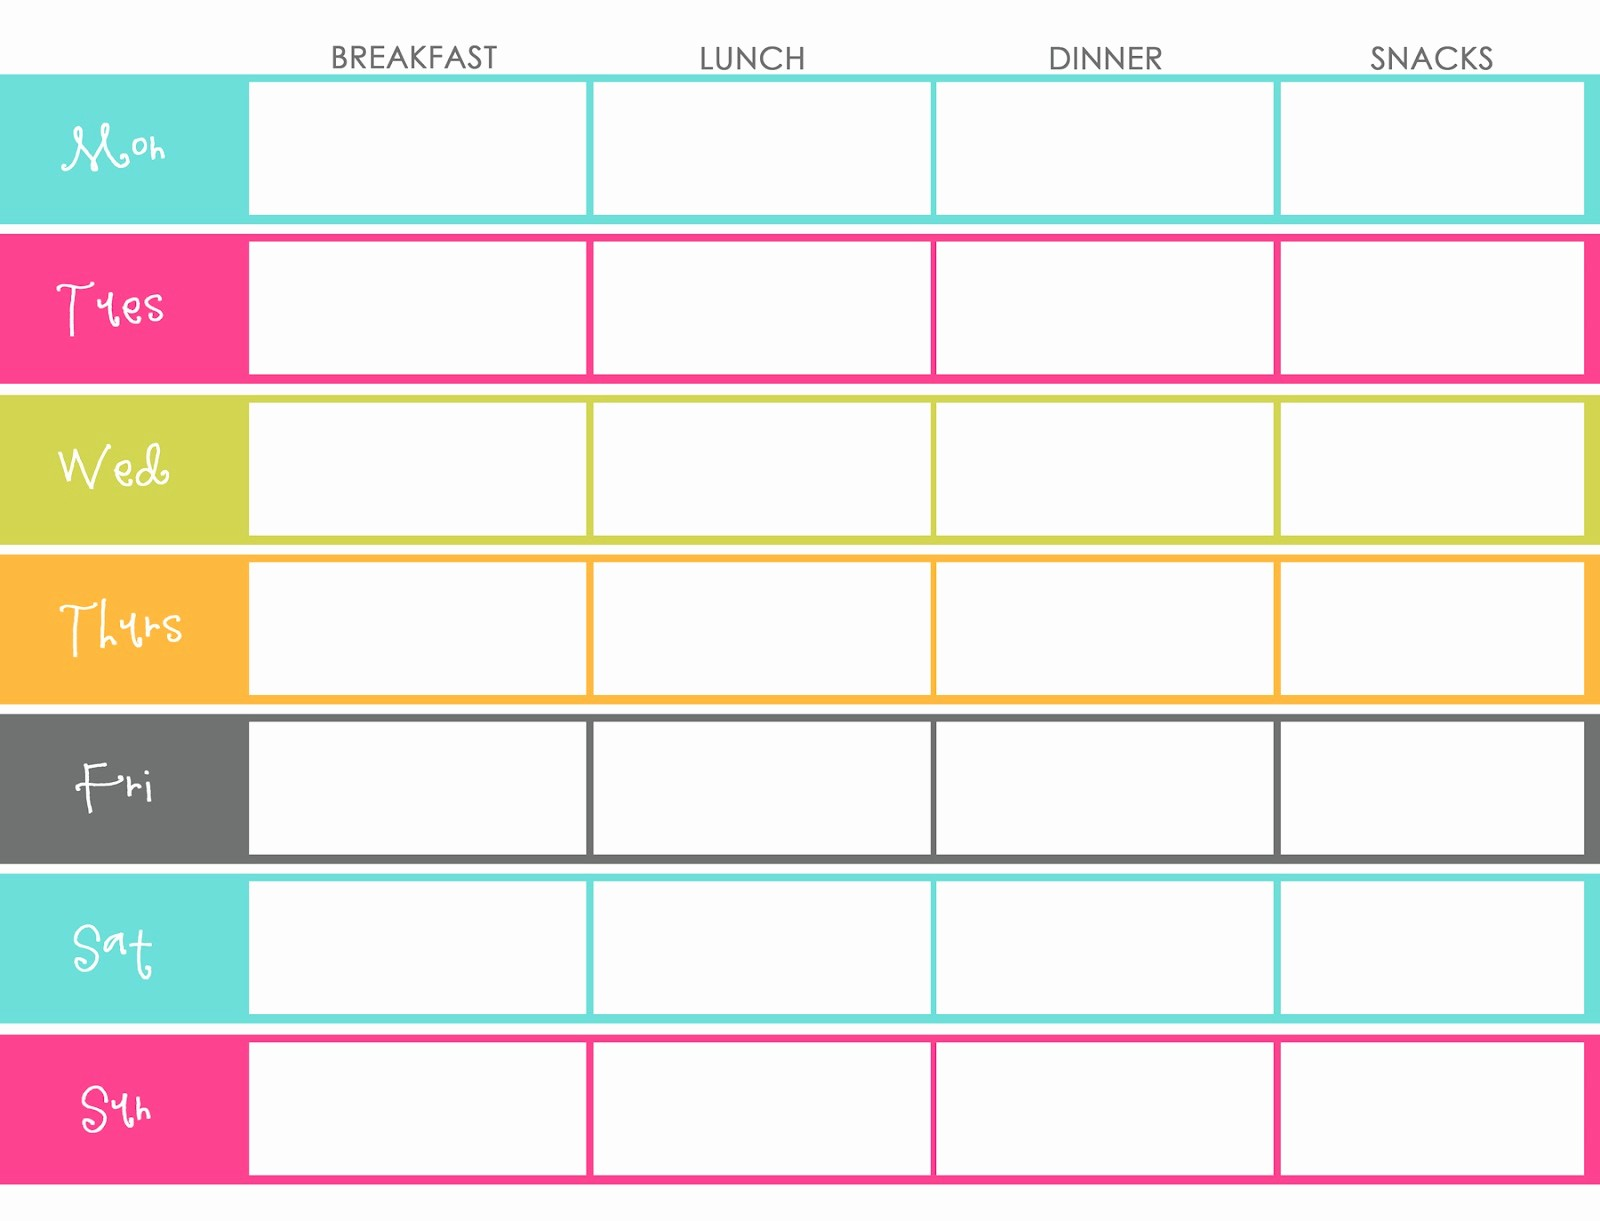 Free Meal Planner Template Download New Meal Plan Template Beepmunk